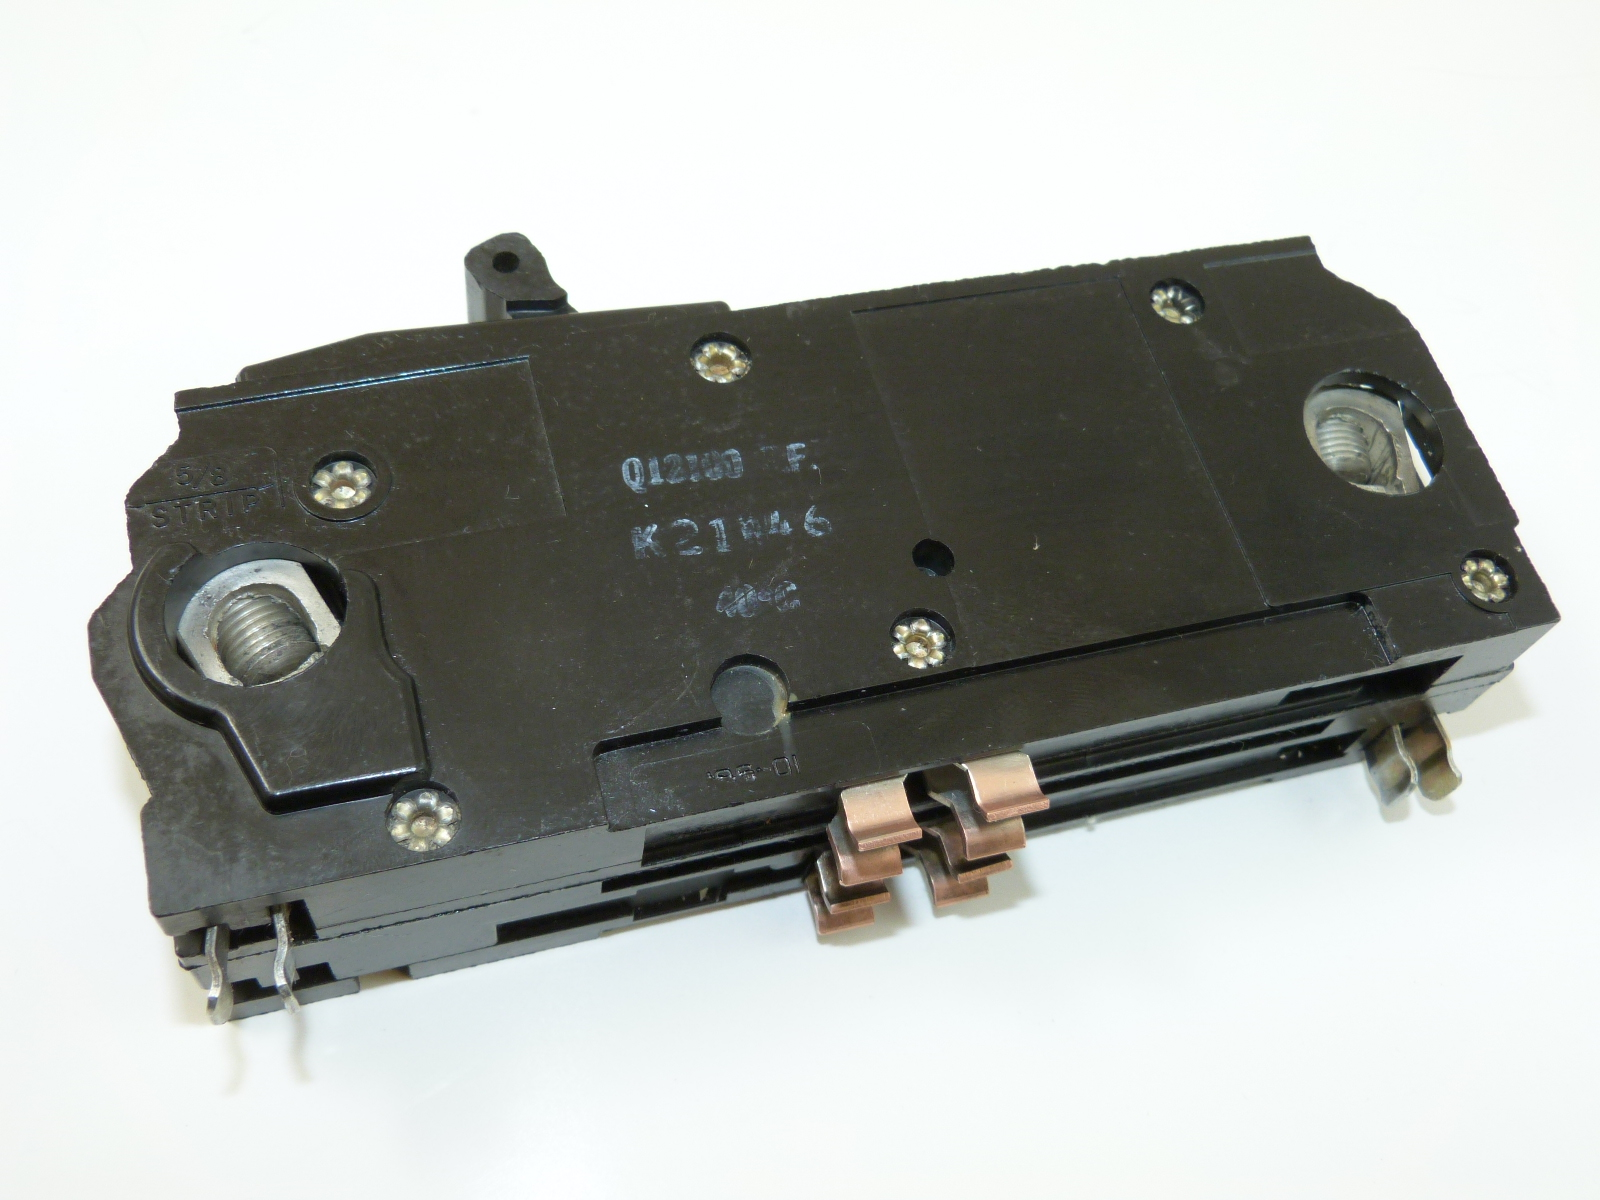 Square D Q12100TF  Circuit Breaker